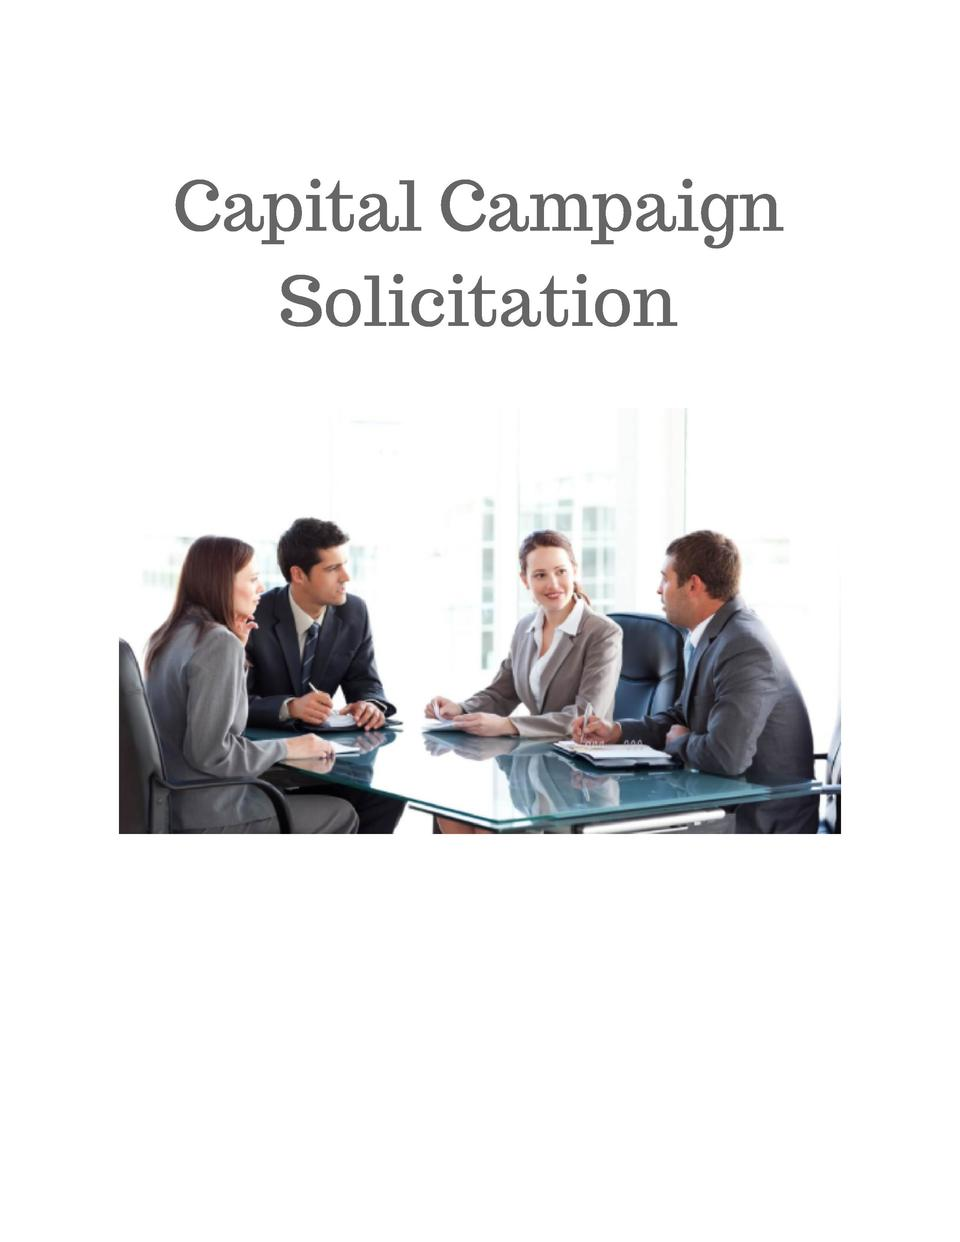 Capital Campaign Solicitation